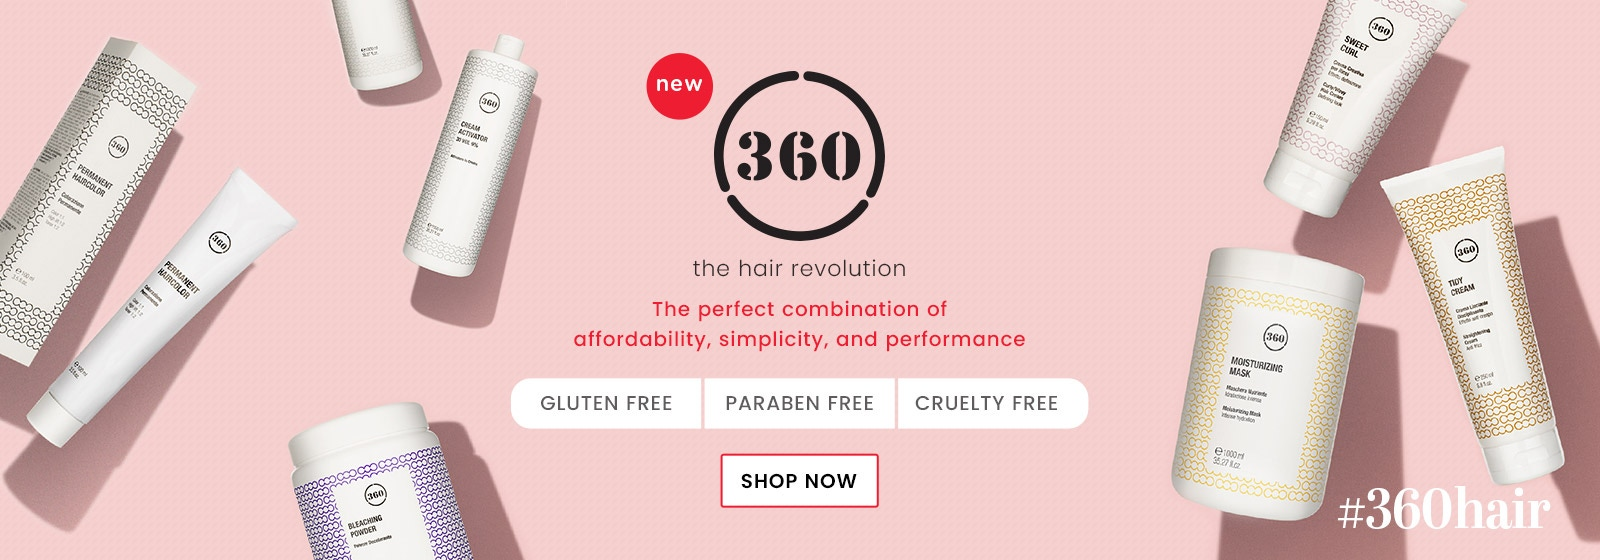 New 360 Hair Revolution Brand - Cruelty, Paraben & Gluten Free – Only at Catwalk Hair & Beauty Australia